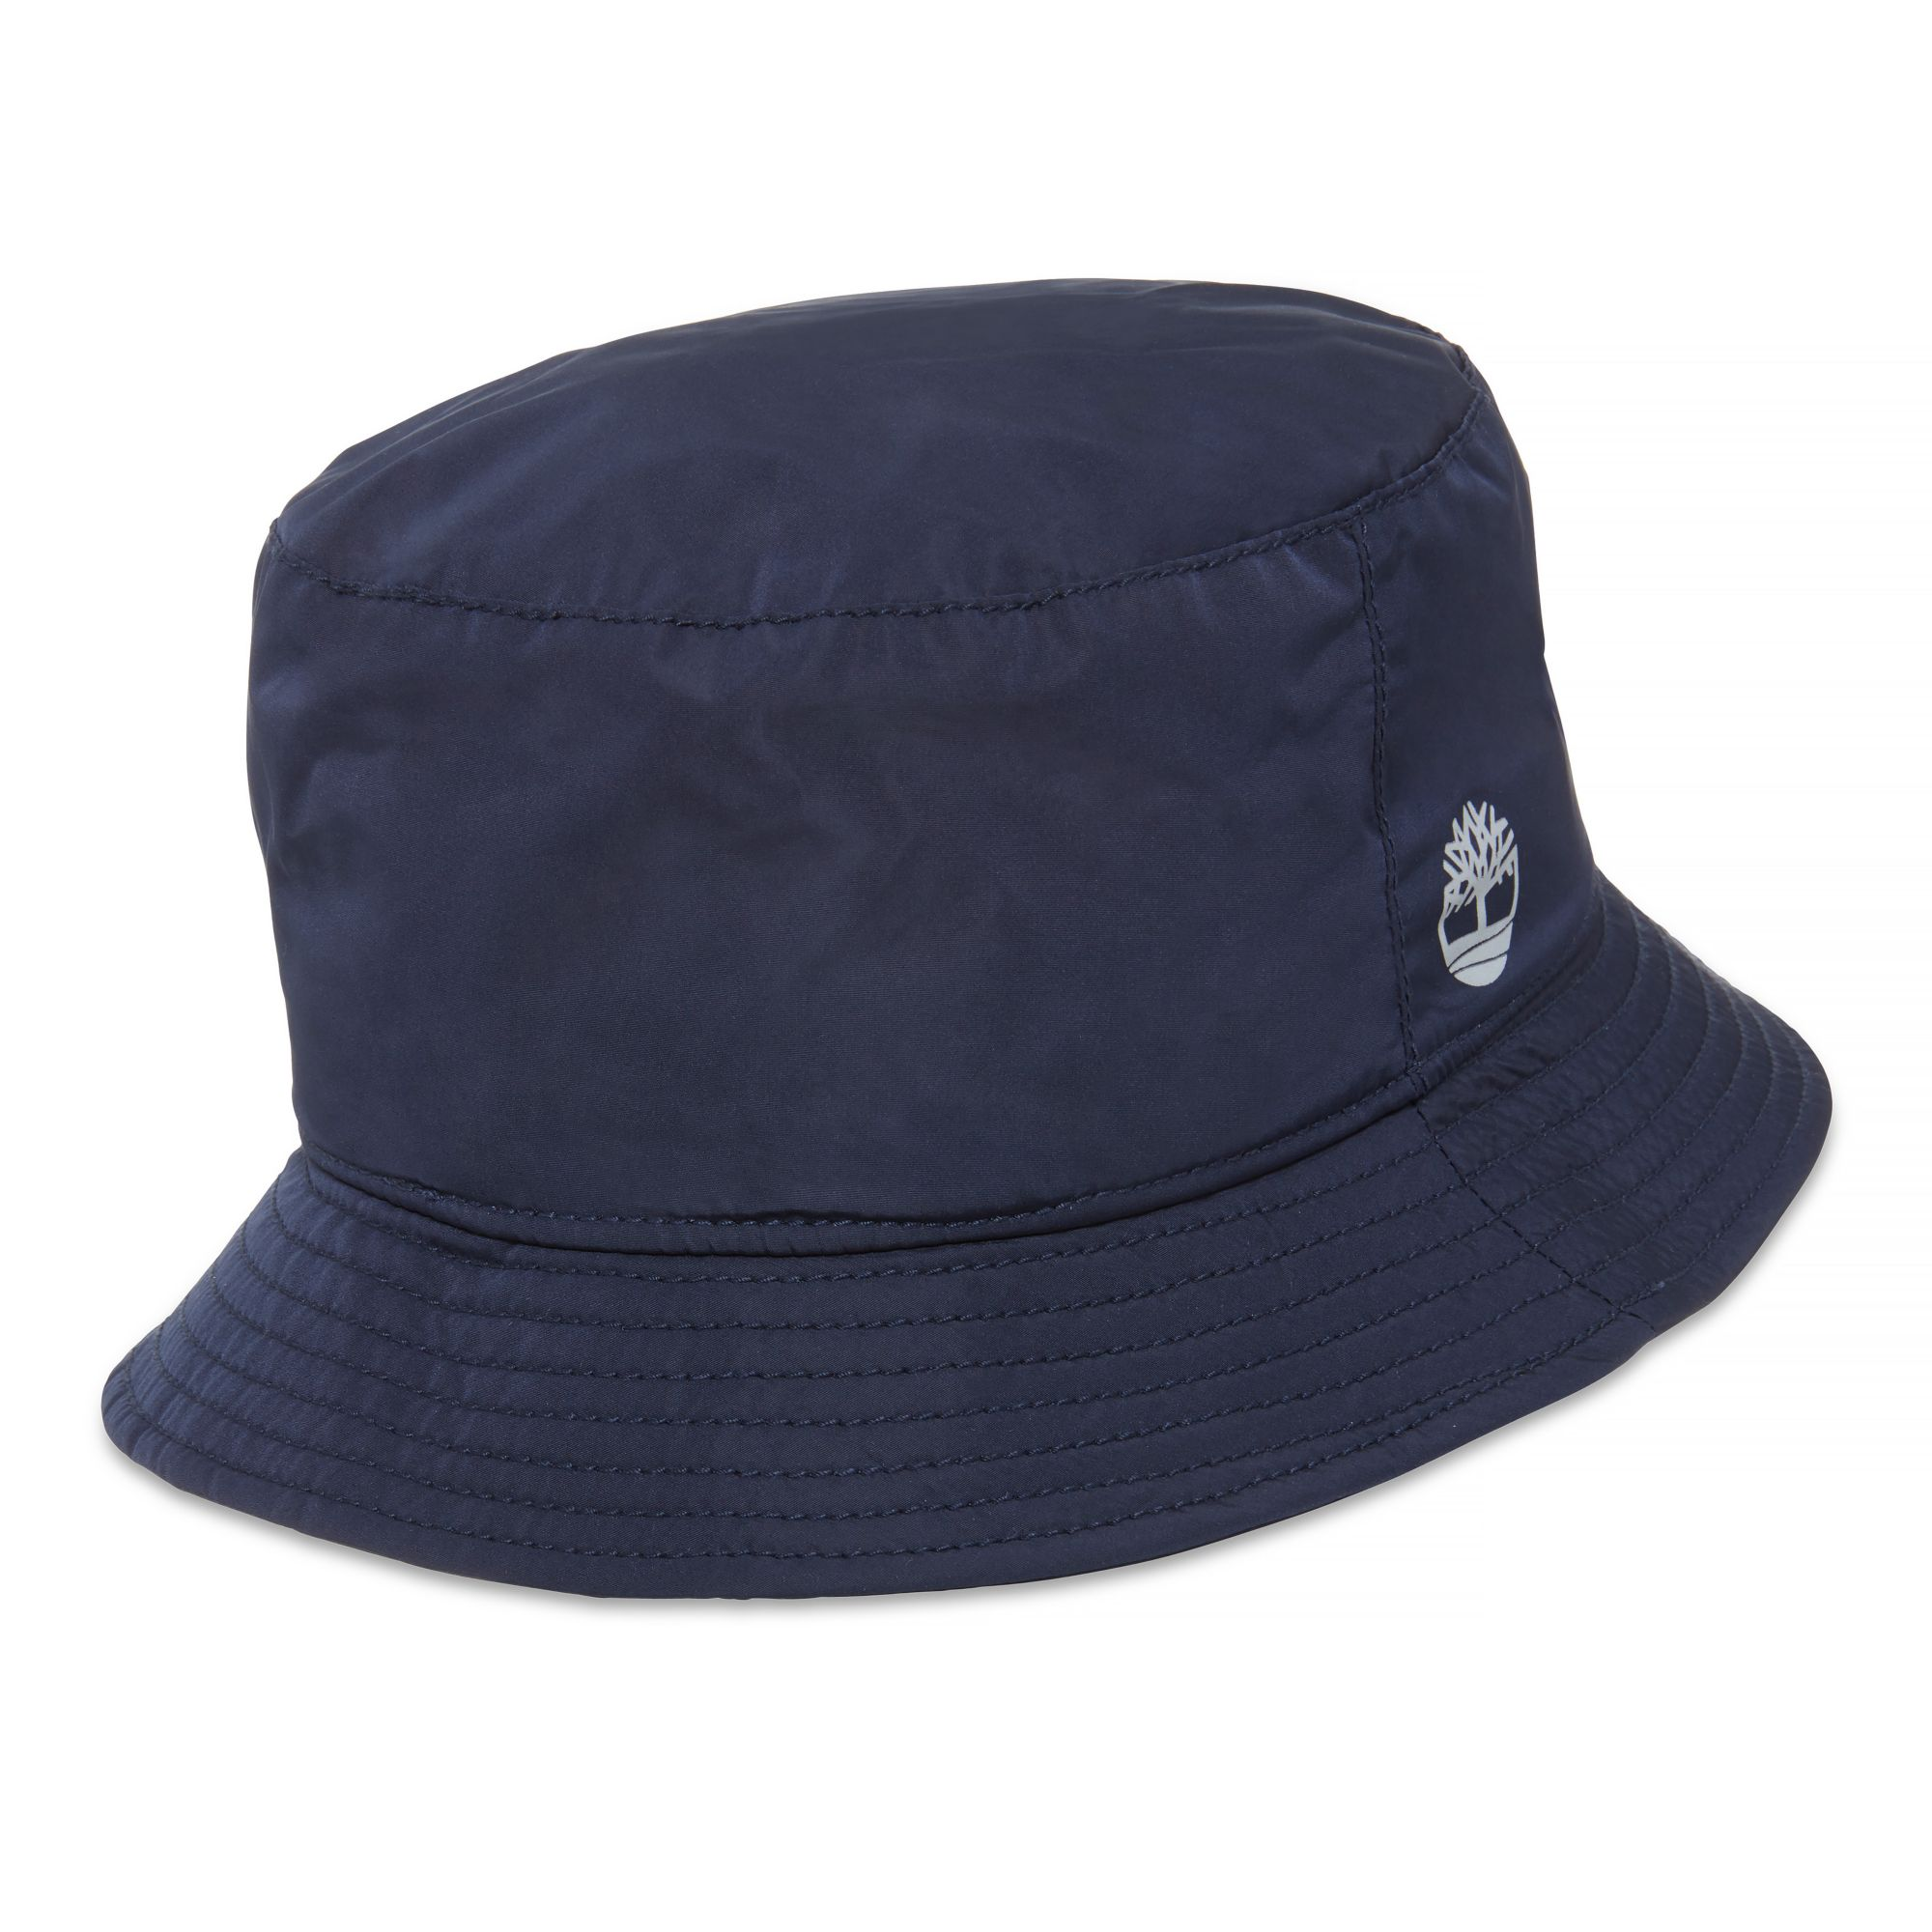 05755d11ce9 Timberland Men s Herring Cove Bucket Hat Navy at £21